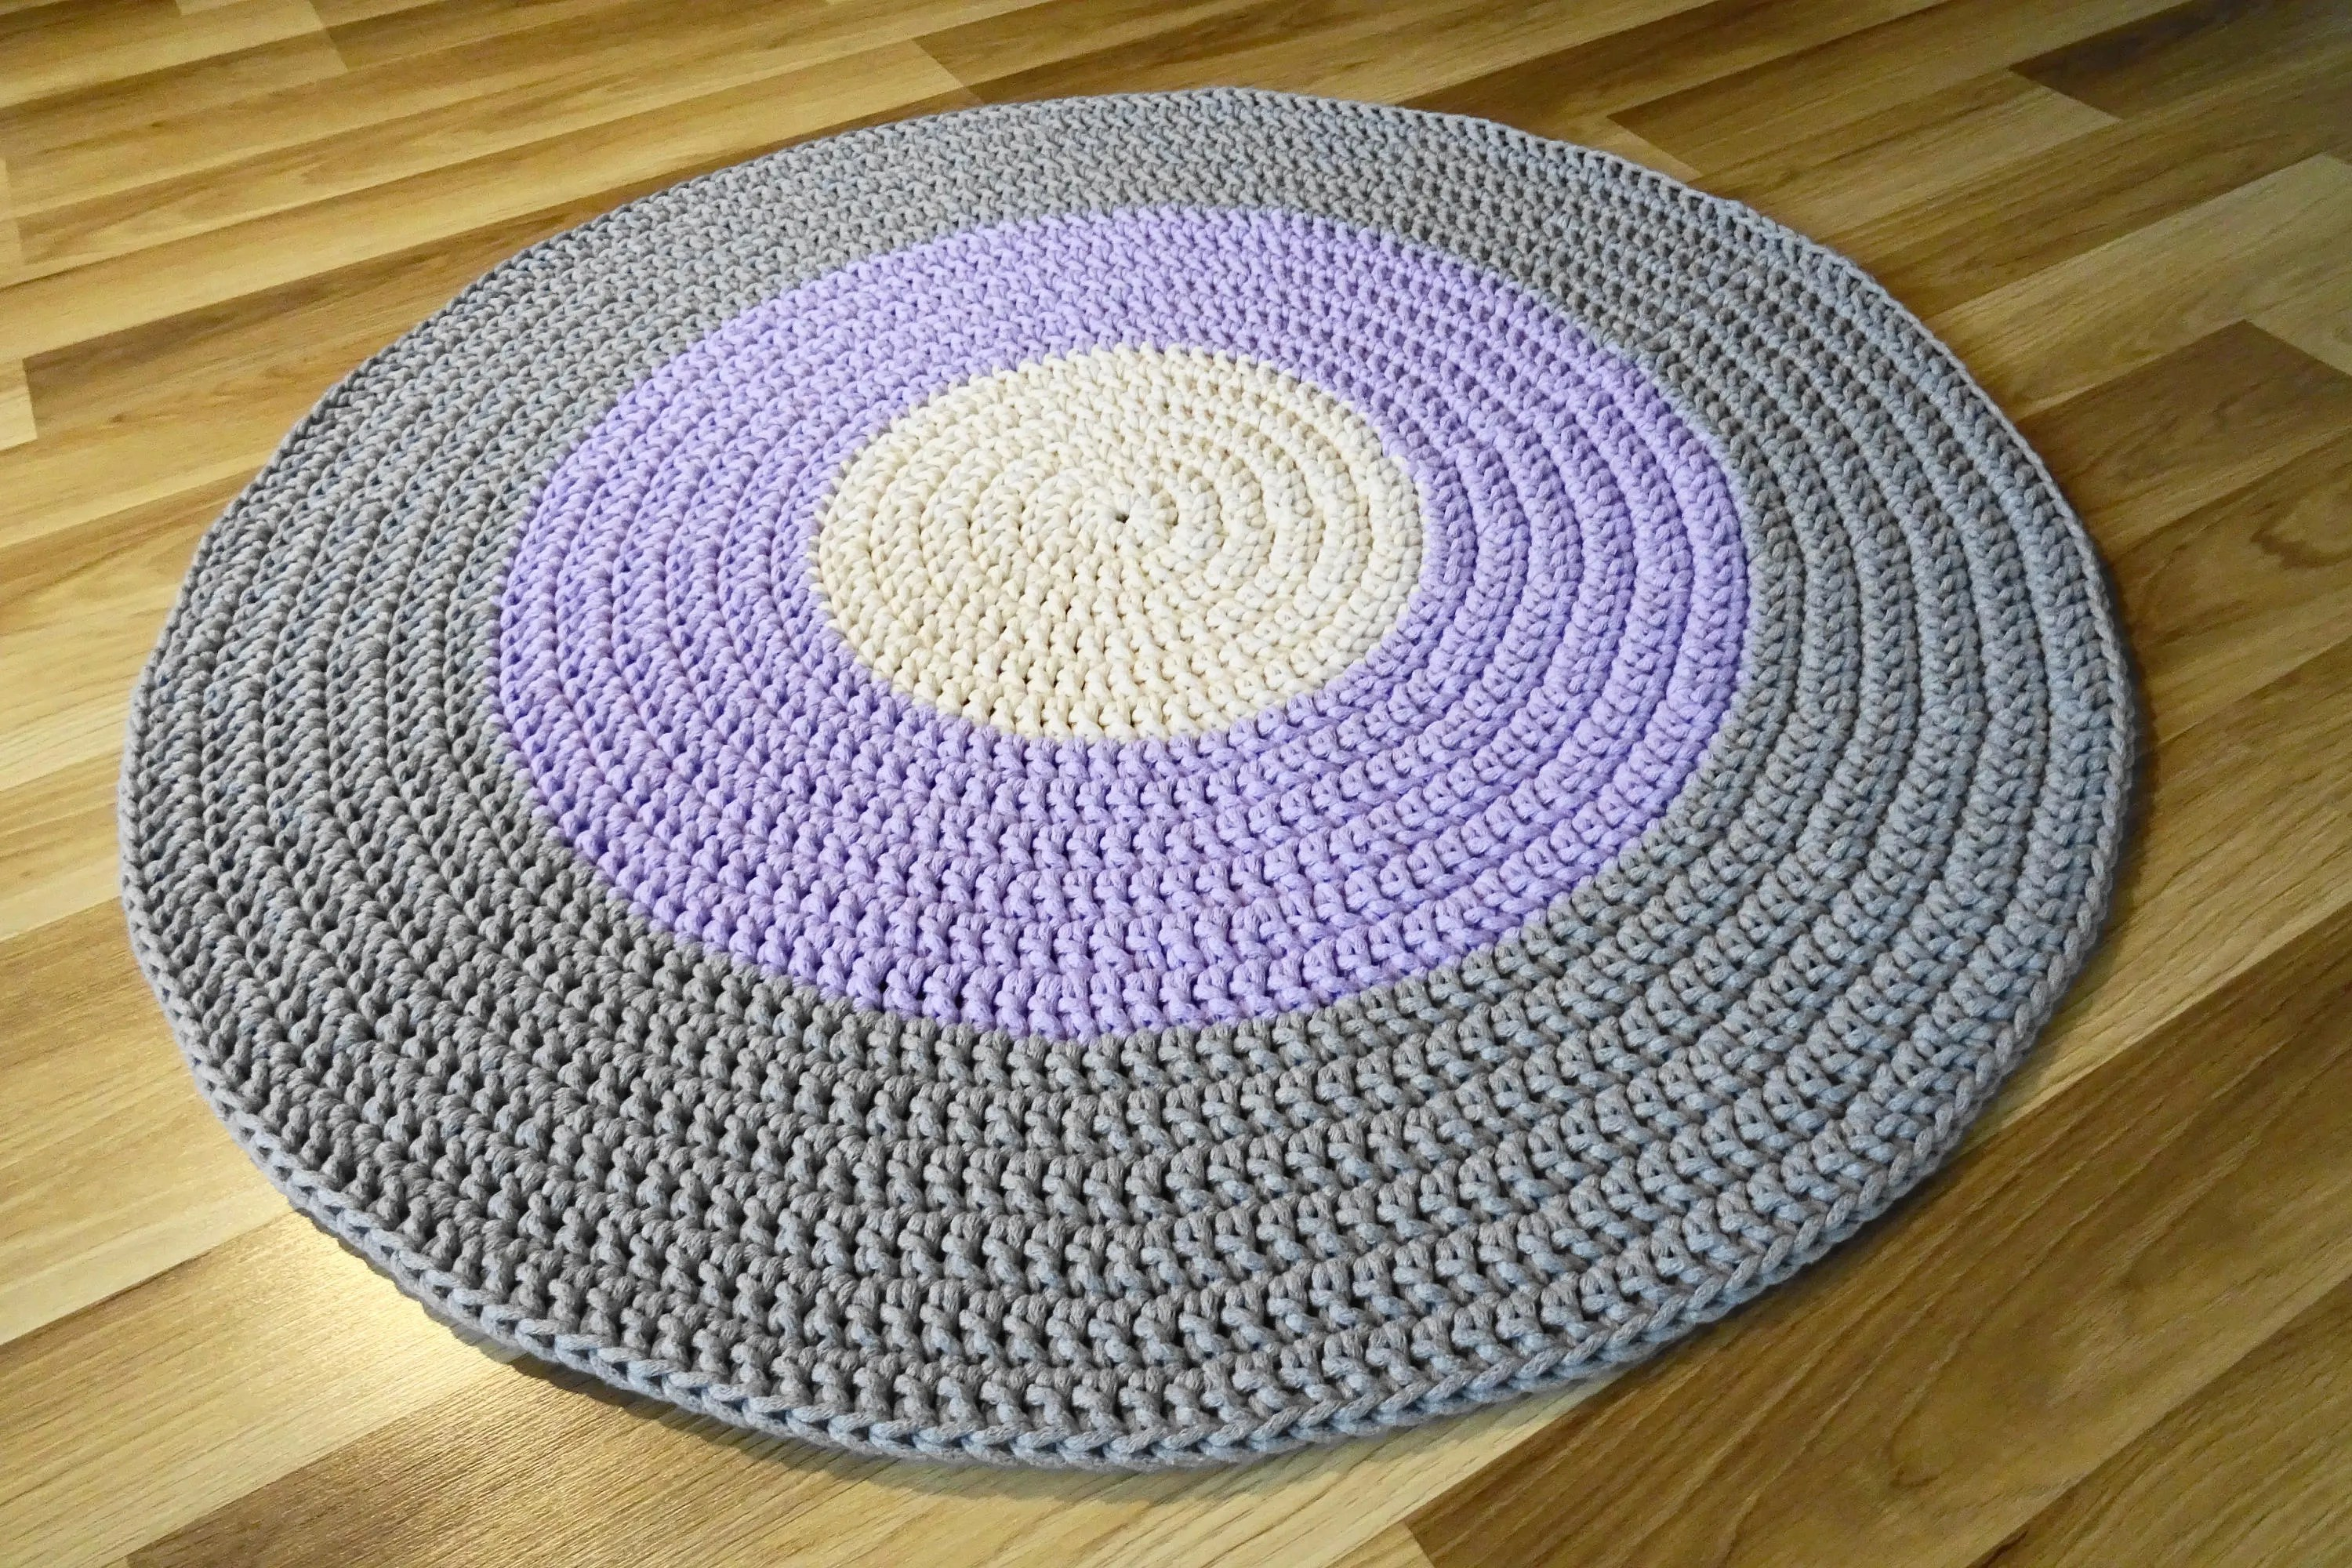 Kinderzimmer Teppich Neutral Alfombra De Trapillo Kinderzimmer Teppich Rund Tapis Rond Vloerkleed Nursery Decor Girl Nursery Decor Boy Crochet Circle Rug Kinderteppich